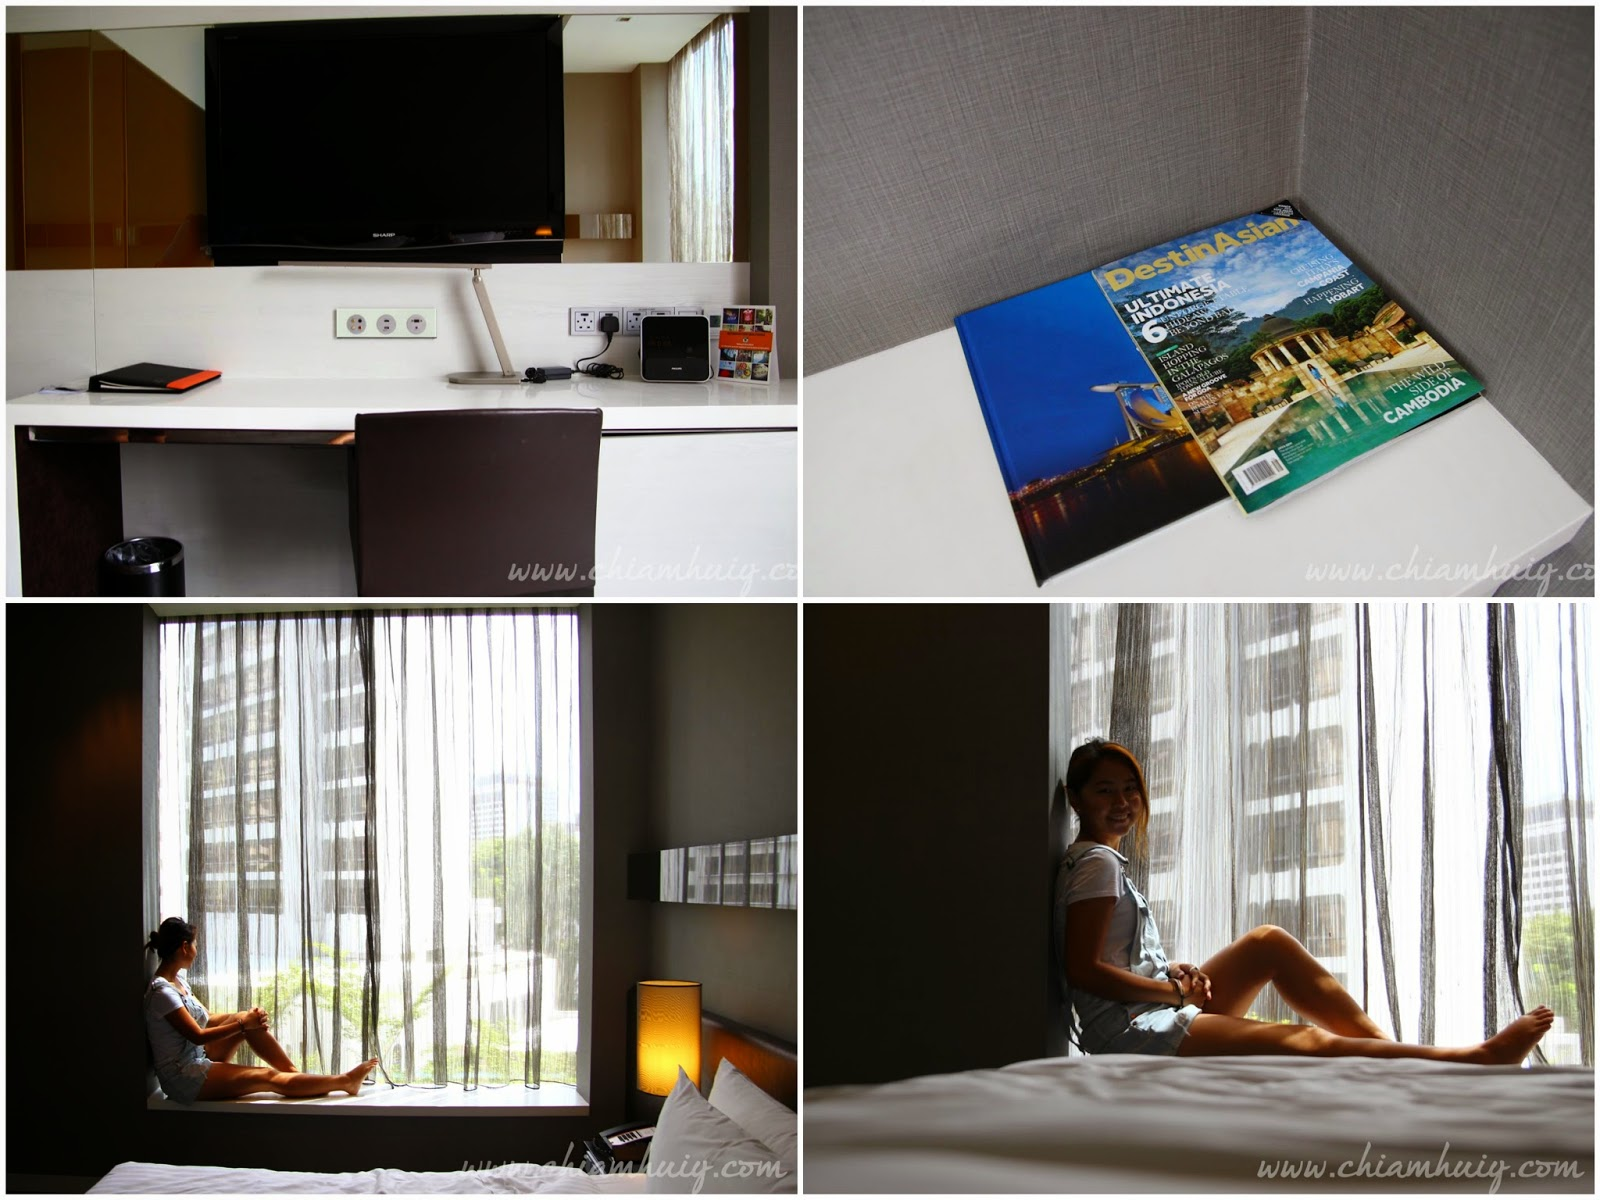 singapore staycation review the quincy hotel celine chiam i love love love the sleek simple design which compliments the basic gray white color theme the windows are lined with translucent drapes to let in some